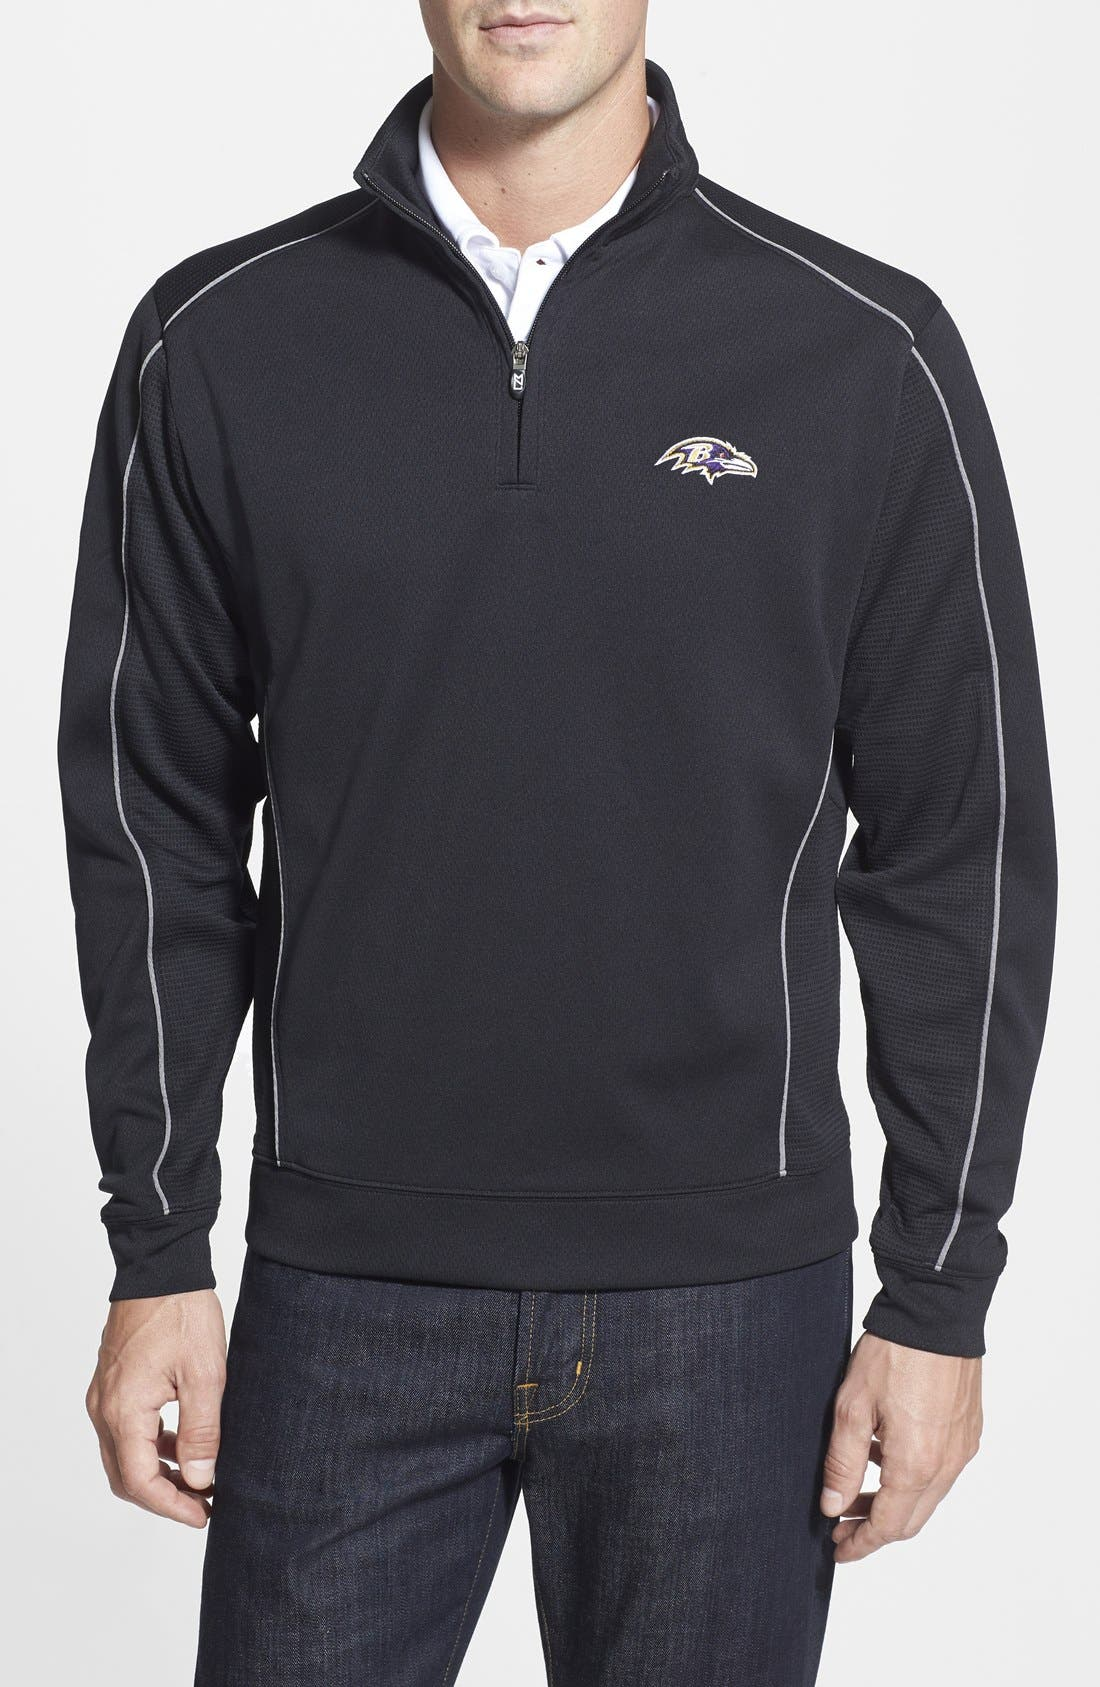 Alternate Image 1 Selected - Cutter & Buck Baltimore Ravens - Edge DryTec Moisture Wicking Half Zip Pullover